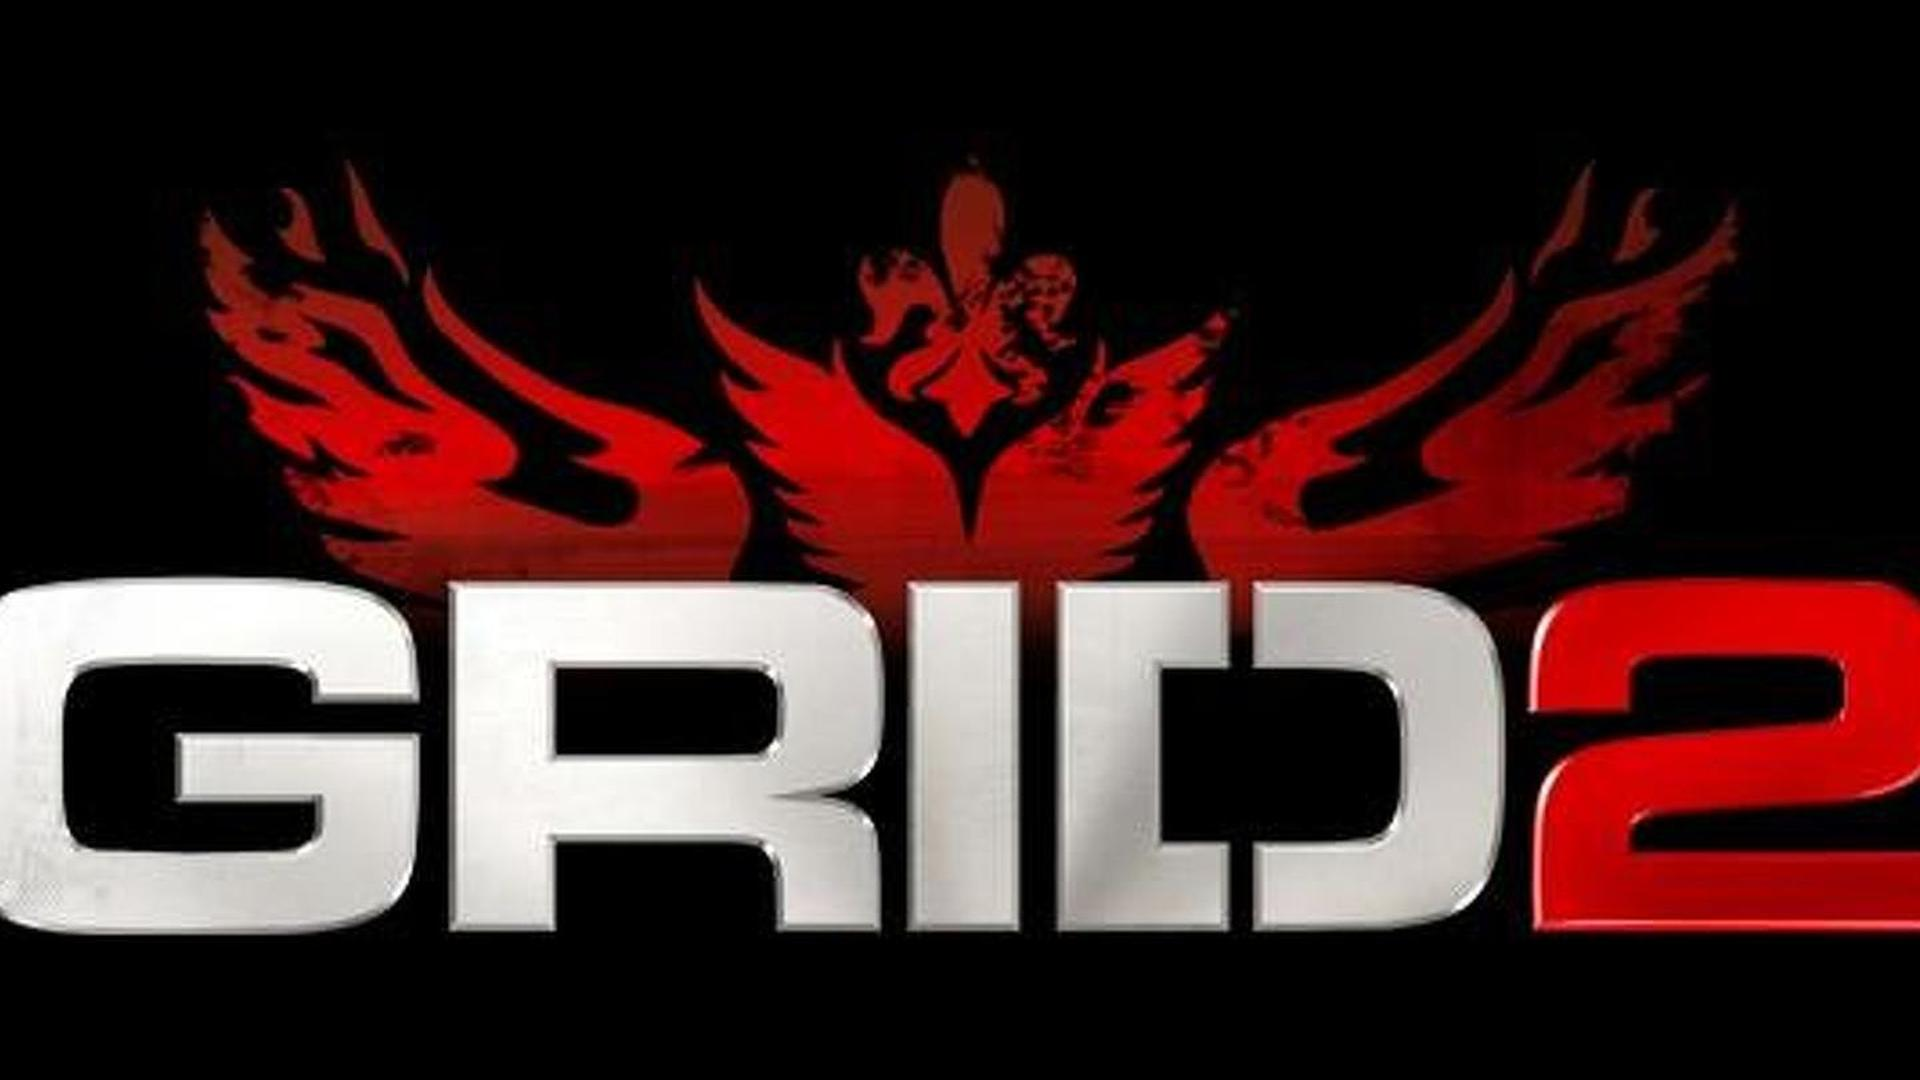 GRID 2 launching in 2013